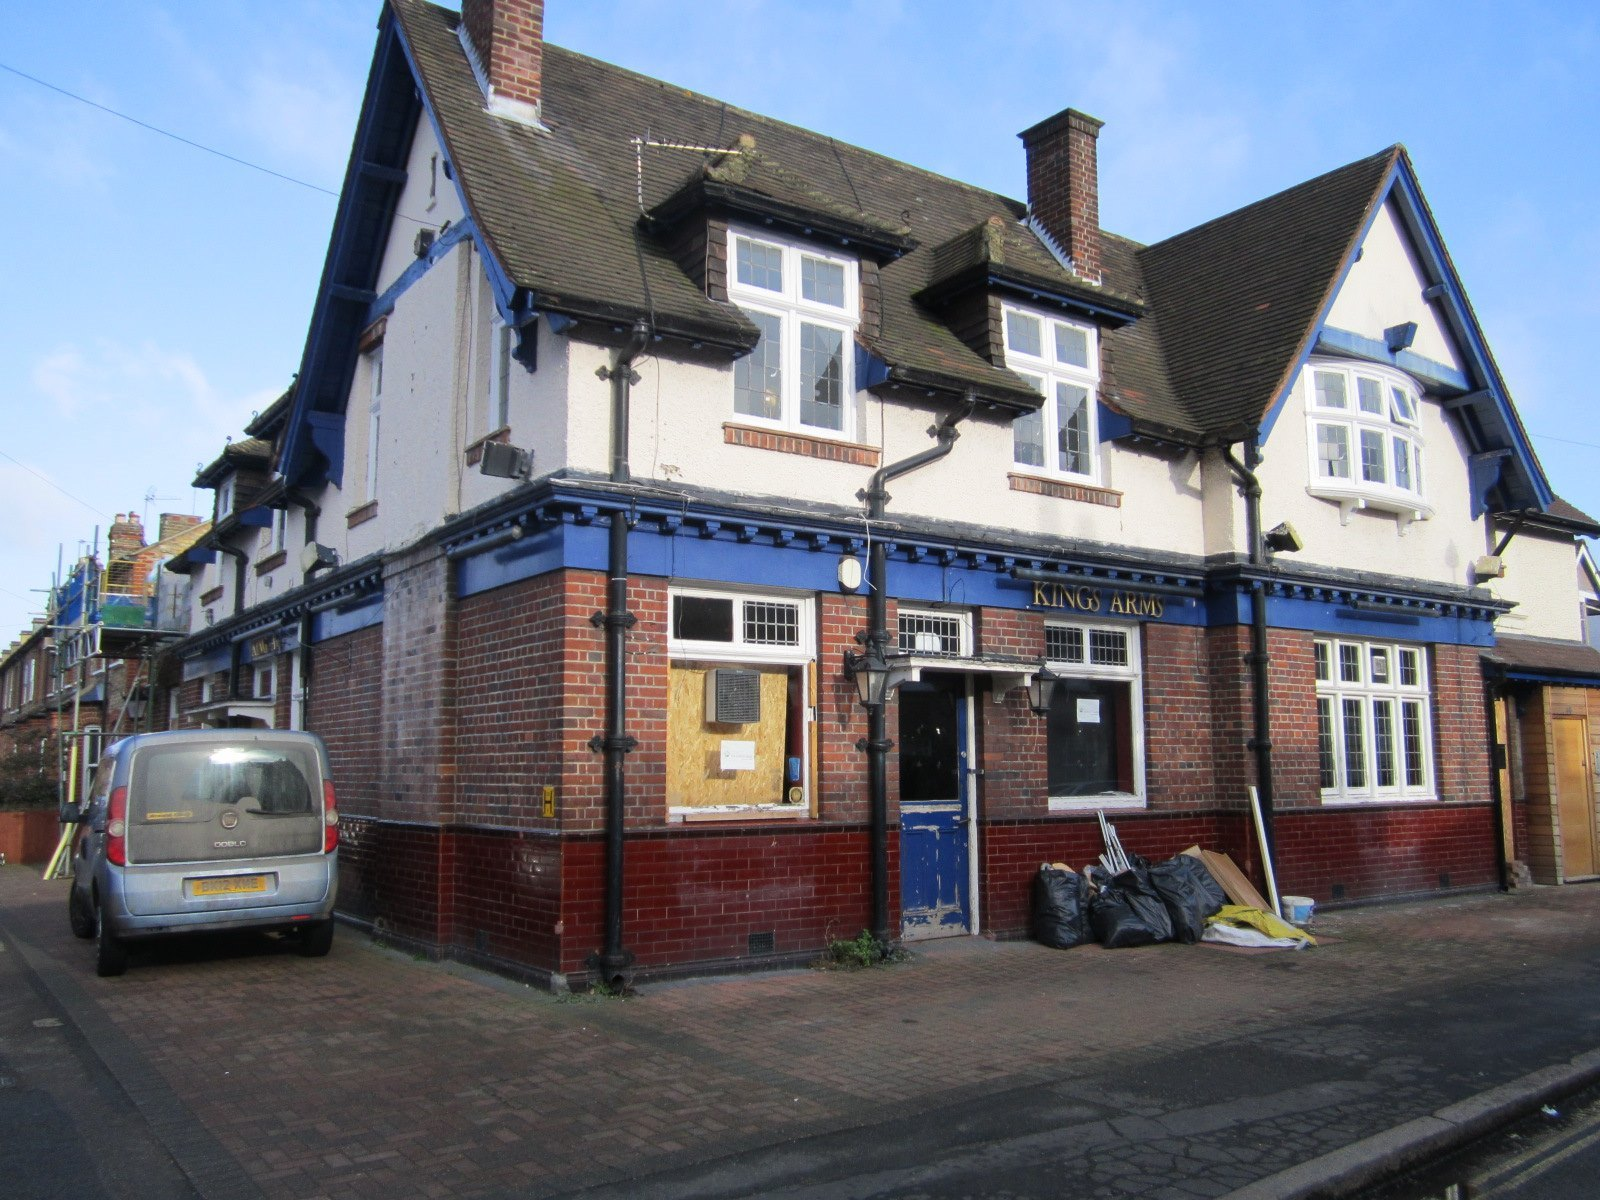 The Kings Arms, 40 Albion Road,, TW2 6QJ